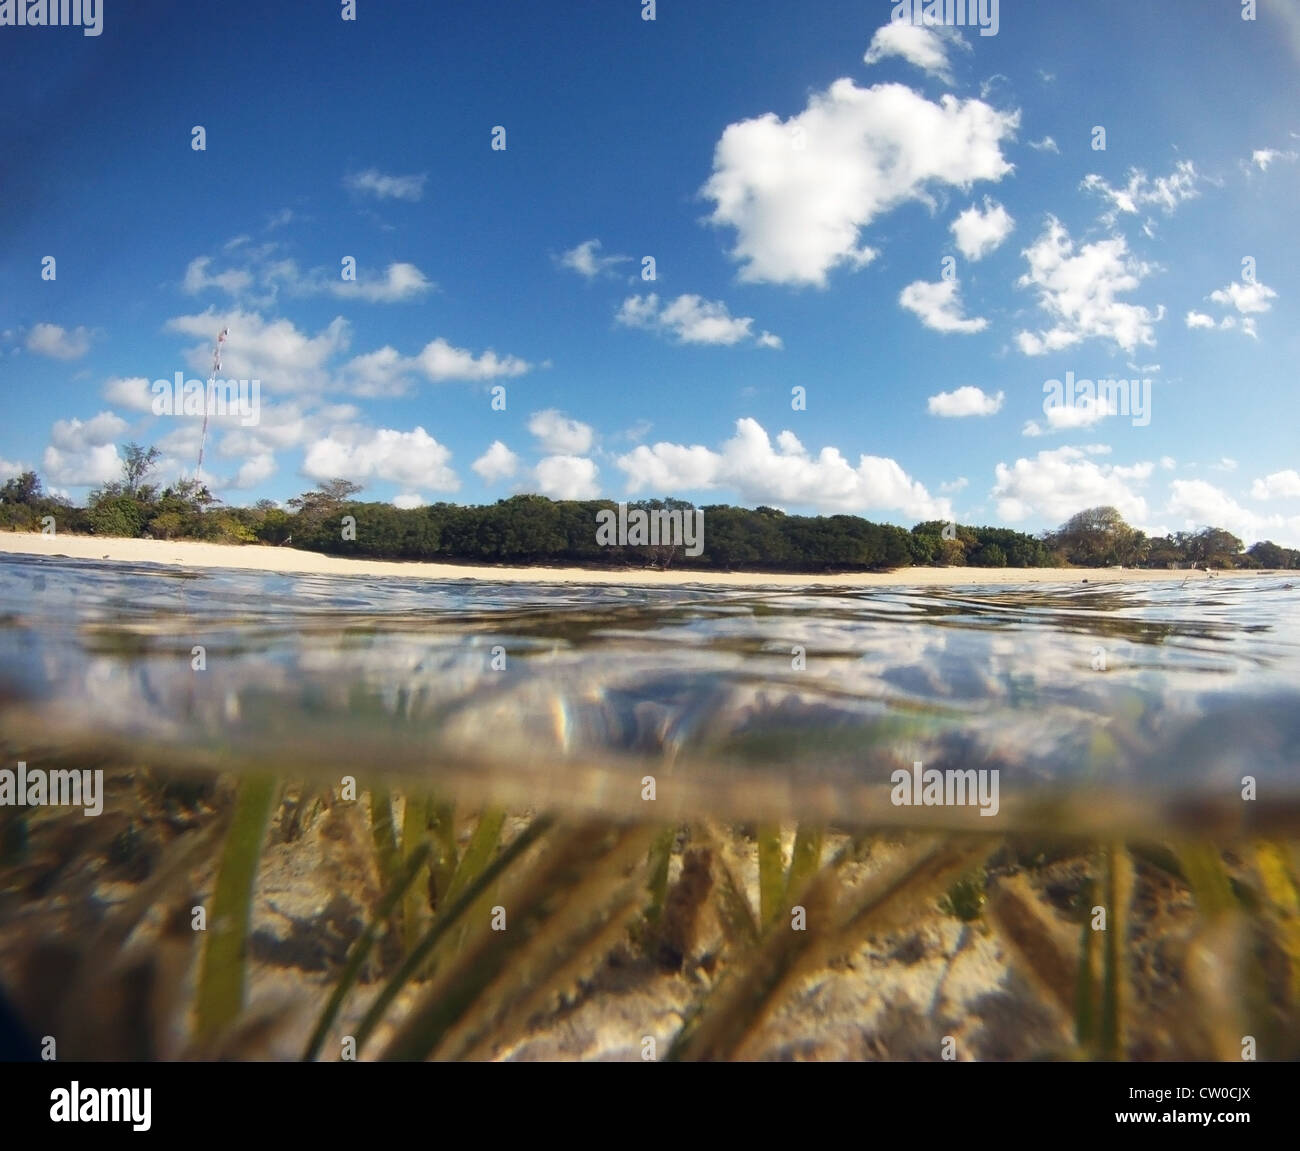 Seagrass beds in the shallows at Masig Island (aka Yorke Island), Torres Strait, Australia - Stock Image